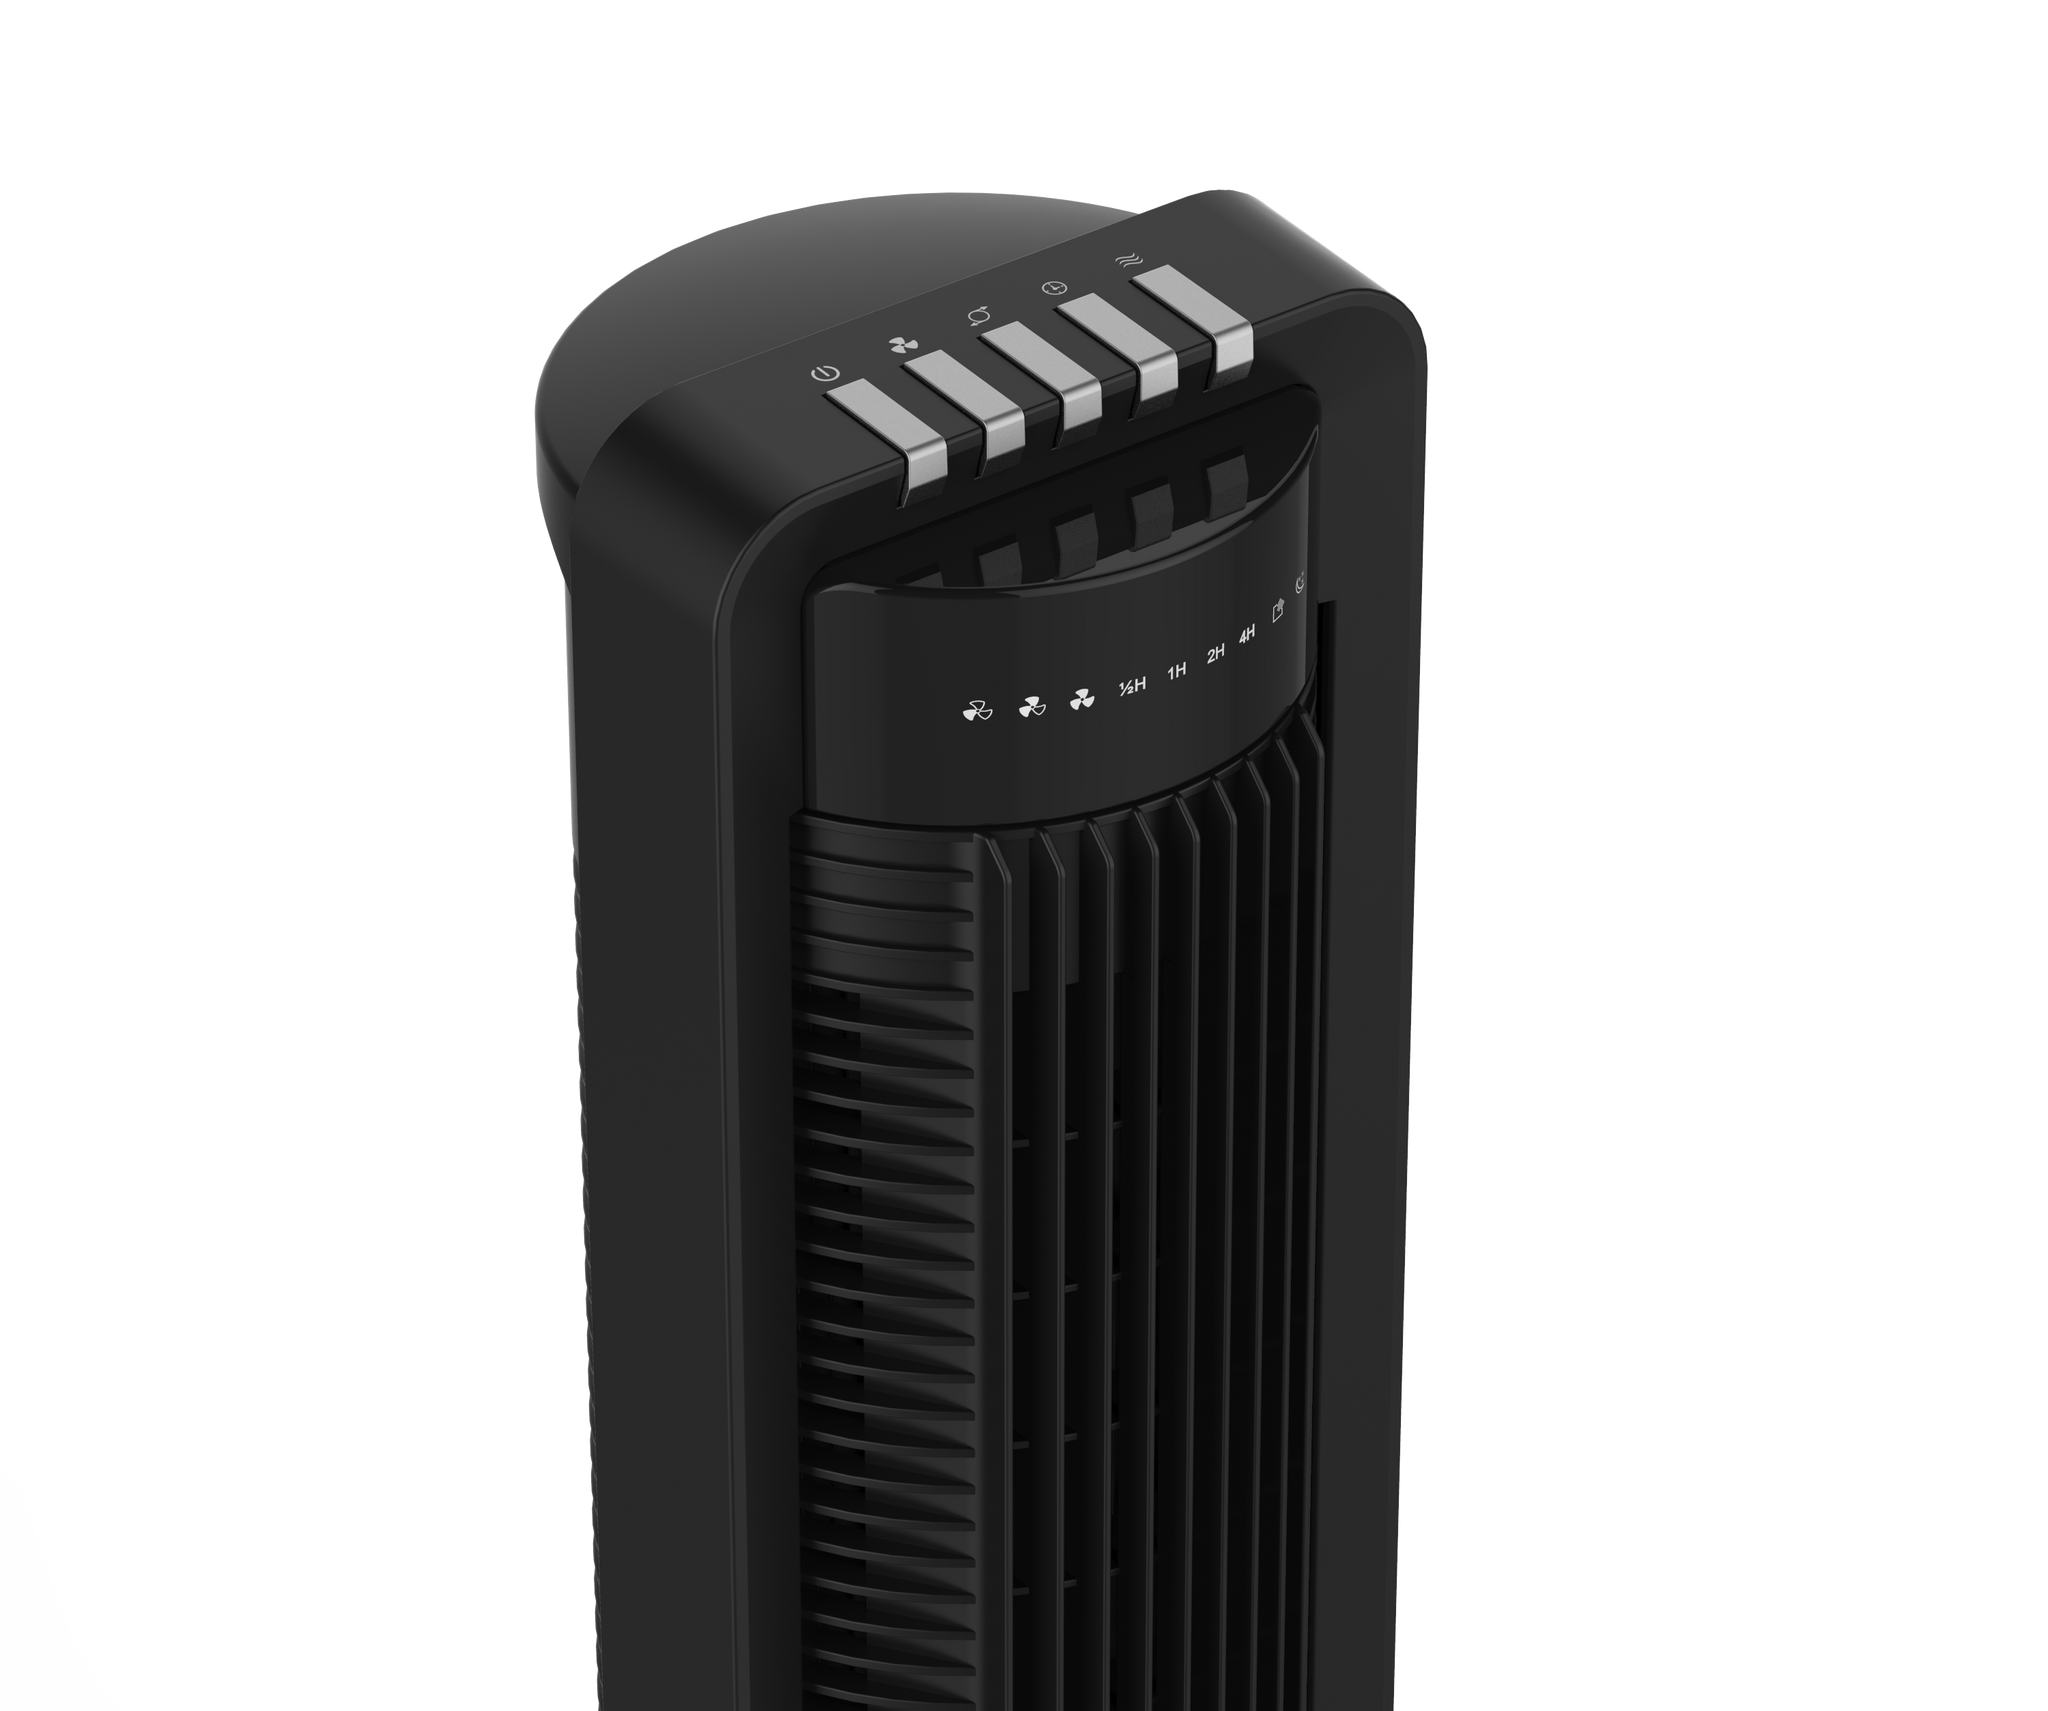 Tower Fan for medium size room with Gliding Grille Technology (Model No.: X01A)